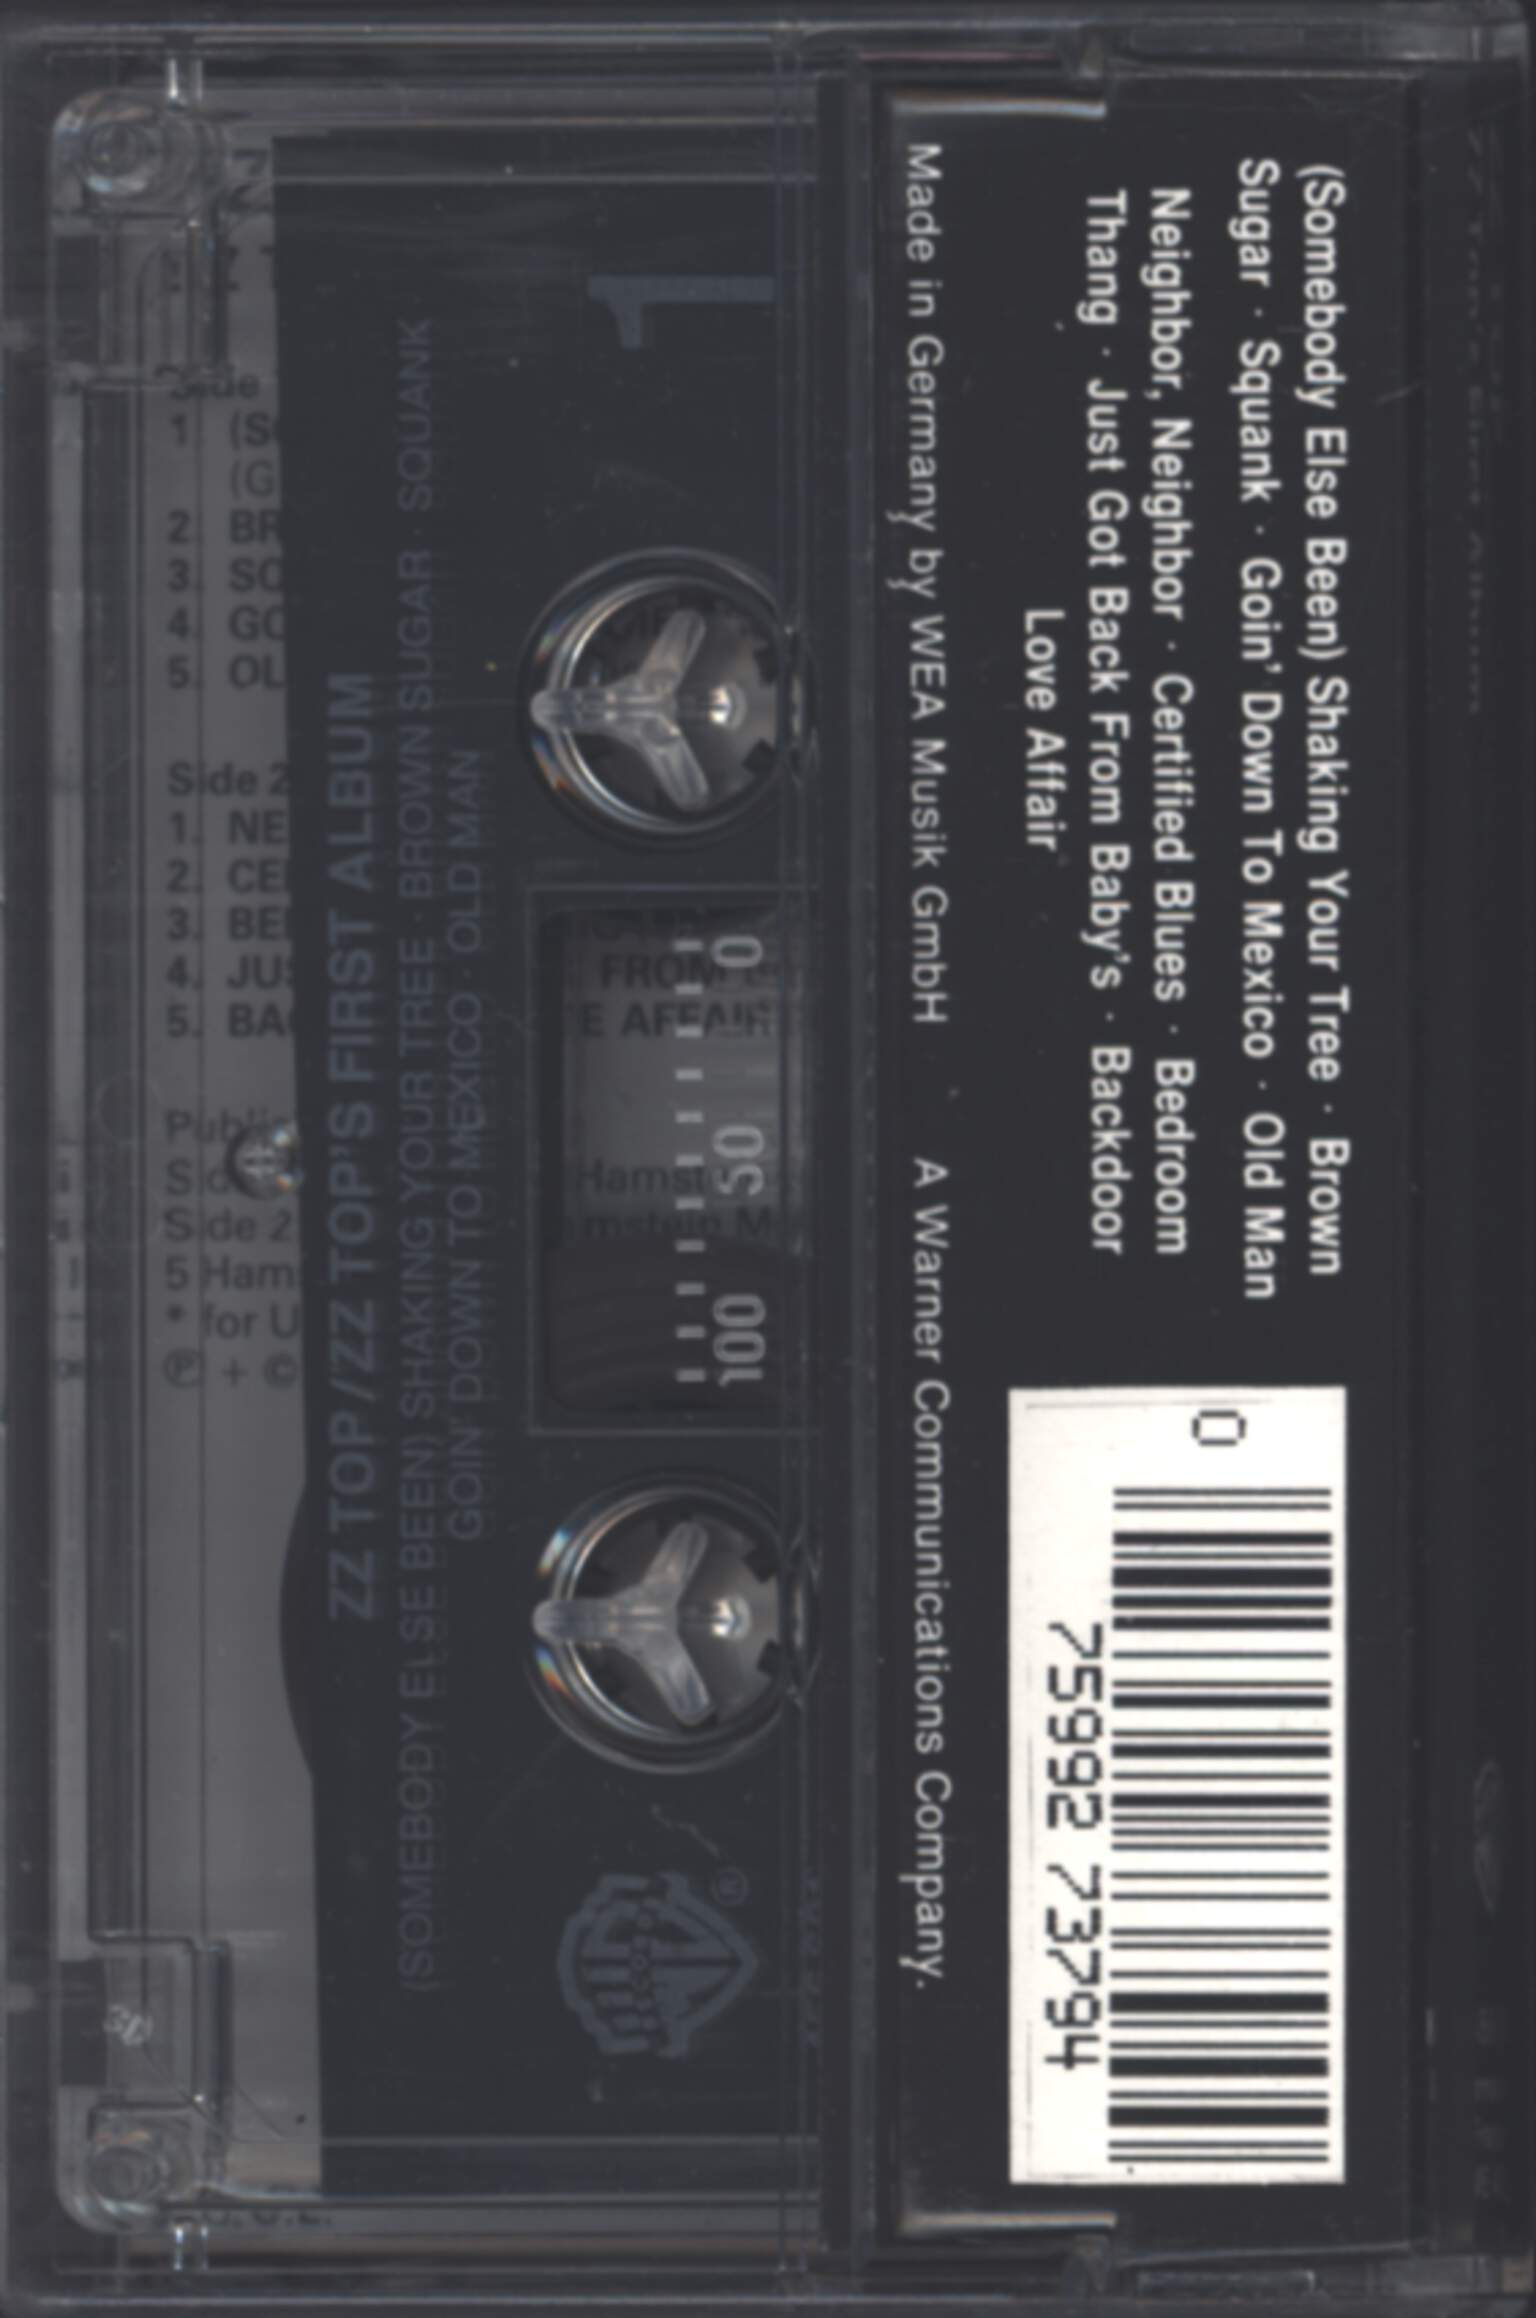 ZZ Top: First Album, Compact Cassette